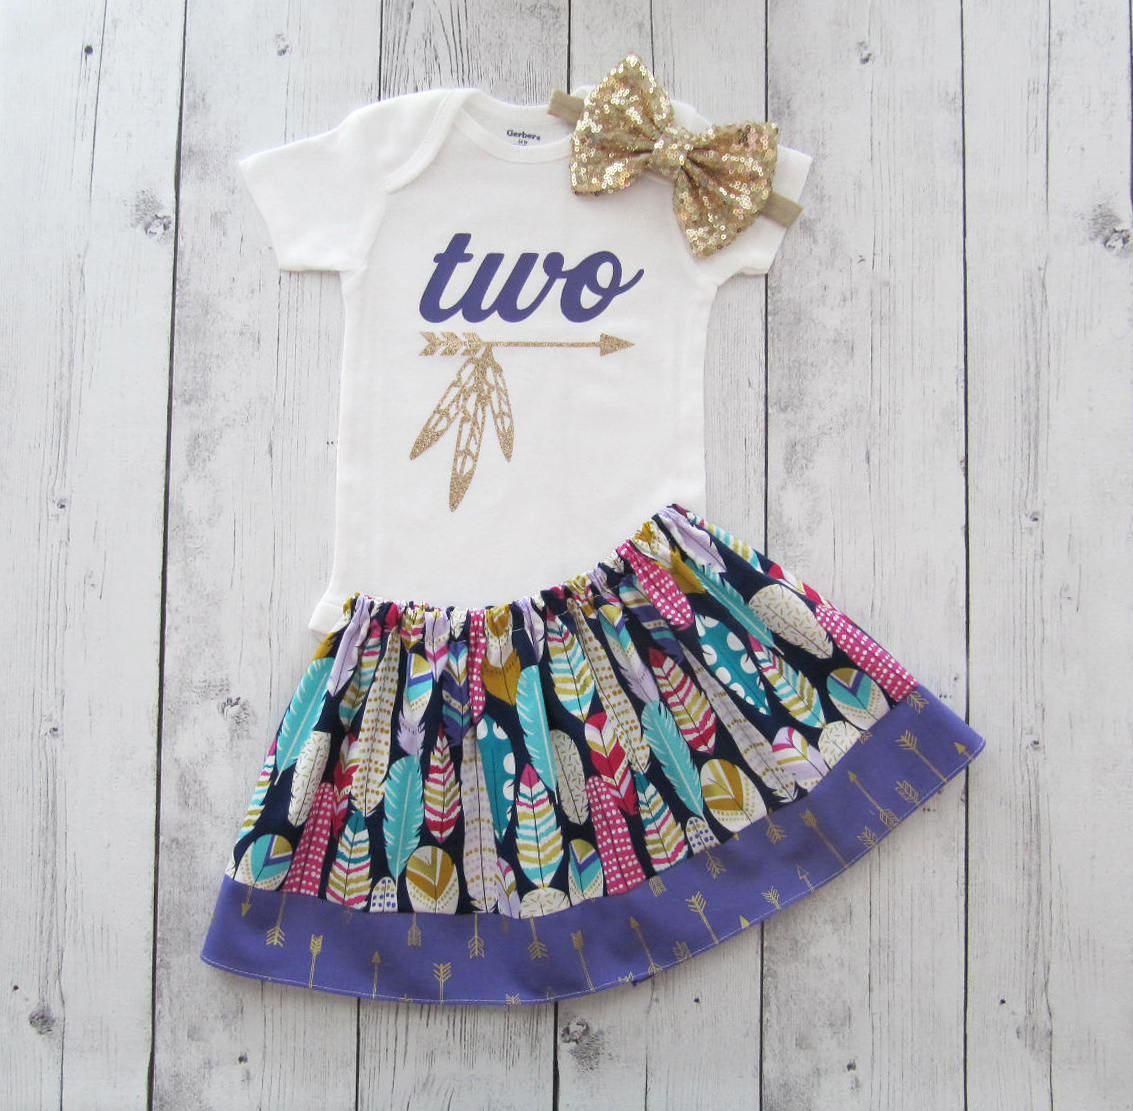 Two Wild Birthday Outfit for Girl - feather skirt, tribal two birthday outfit, two year old birthday, two wild birthday outfit girl